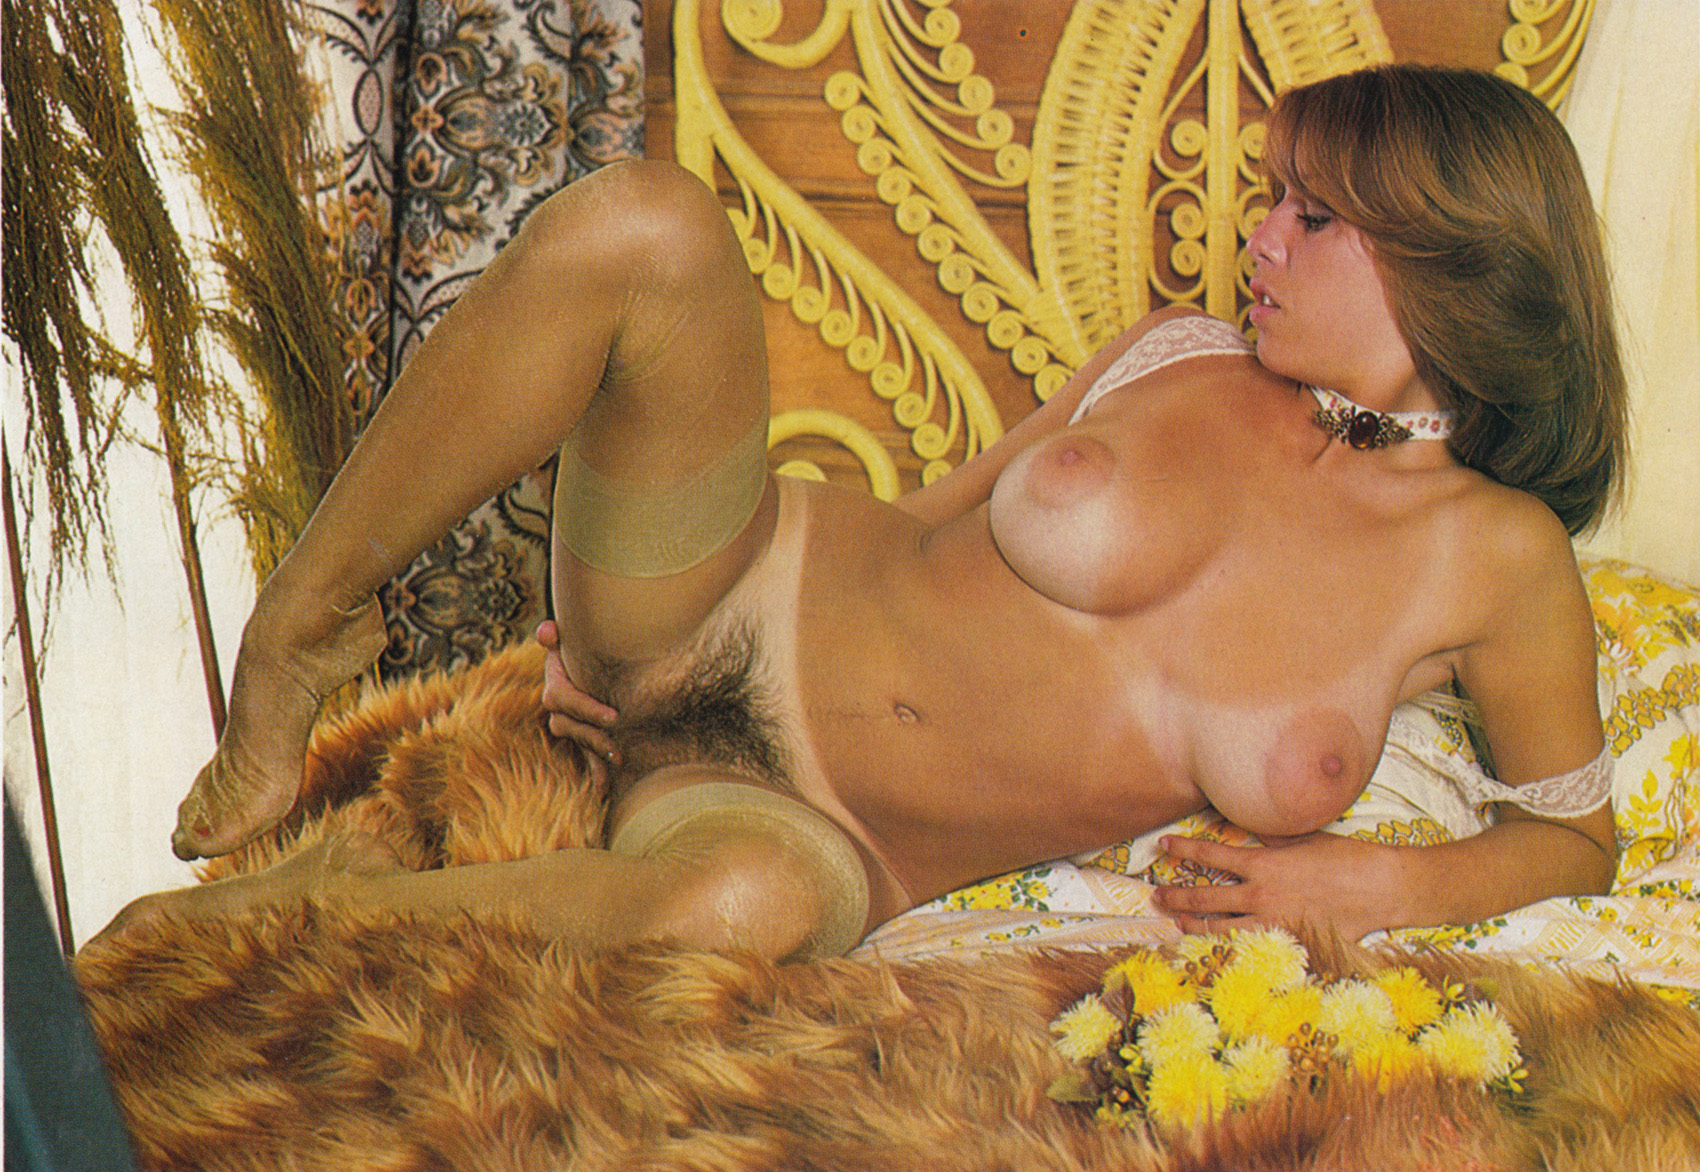 Diane lane shows nude boobs and hairy pussy in famous picture scene